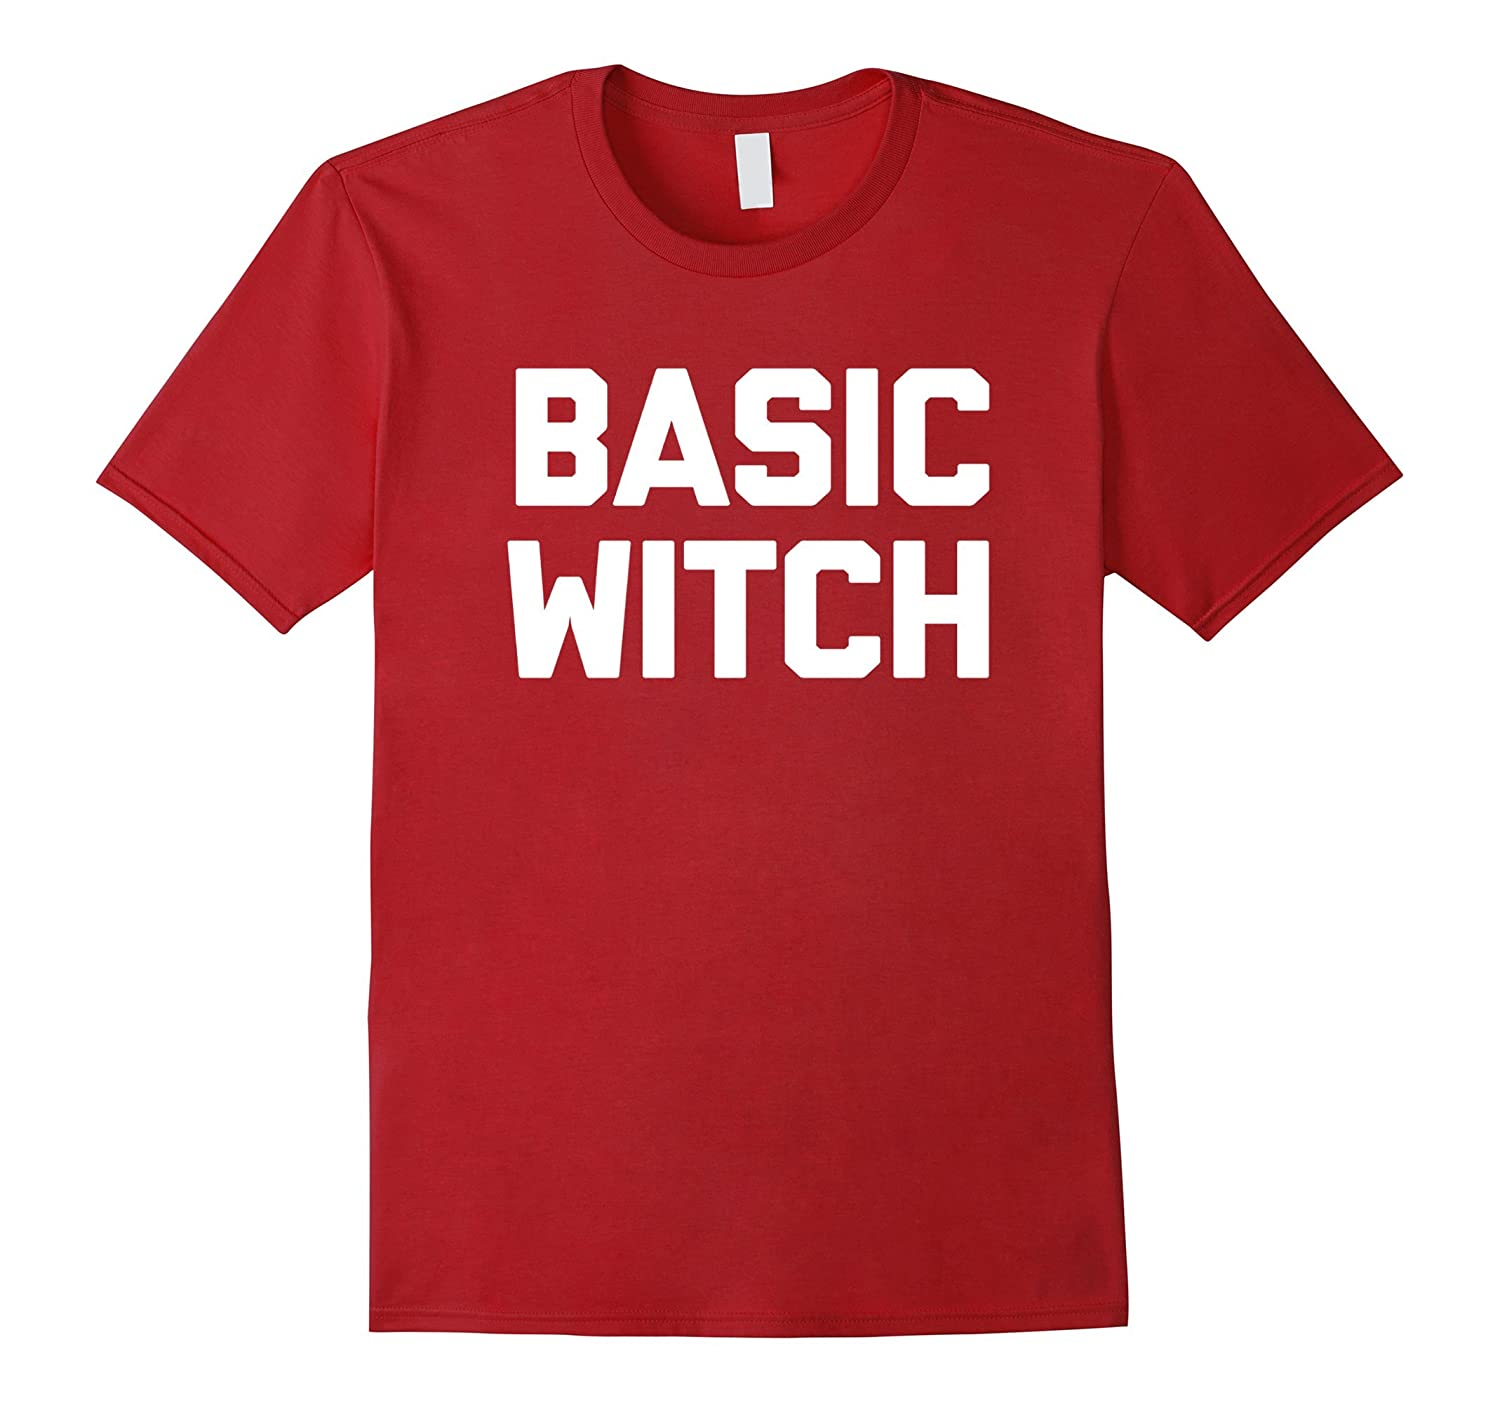 Basic Witch T-Shirt funny saying halloween costume sarcastic-Cool ...